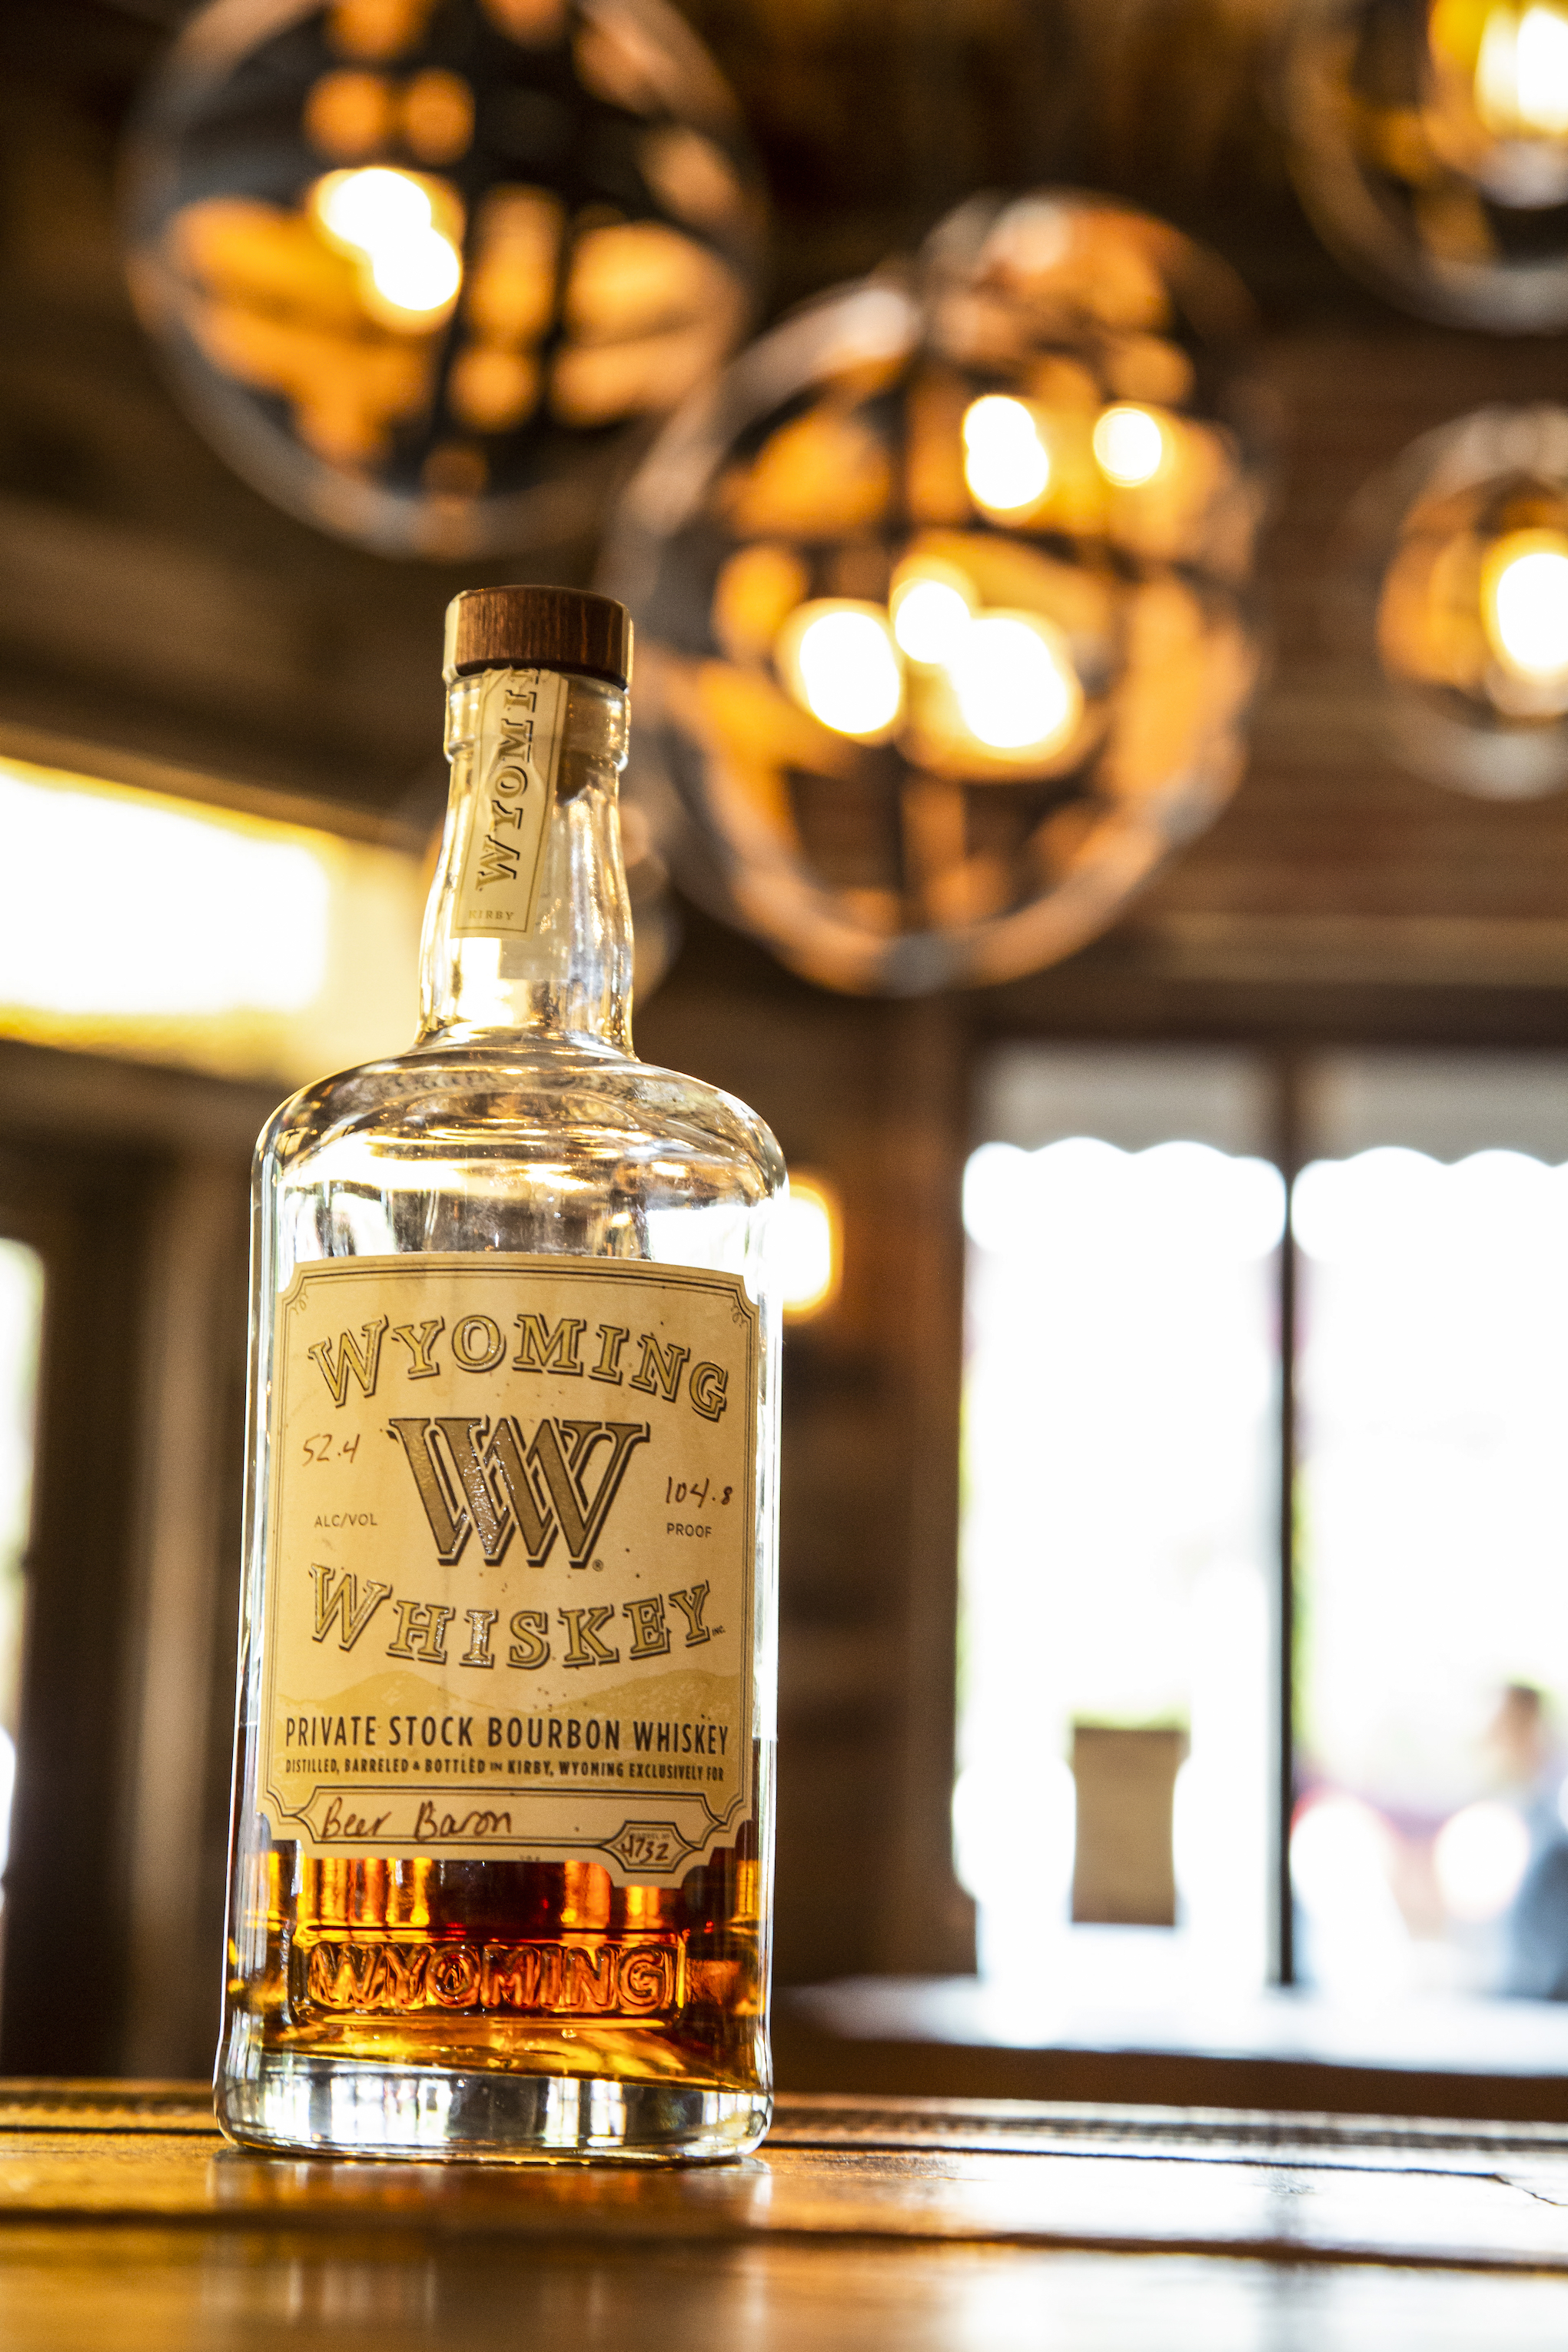 """Welcome to a Wyoming Whiskey Wednesday! . """"This Private Stock Single Barrel of bourbon was chosen for you because its unique character left an impression on all who have sampled it. Ancient limestone water, high-prairie grains, and five years in the best charred American oak, made this bourbon what it is. It is 240 bottles that can't be found anywhere else. And this bottle is yours."""" -Straight from the back of the bottle, Wyoming Whiskey . We can't wait for you to come and try this unique whiskey! And don't worry, theres more where this came from!  Whiskey Wednesday features 50% off all whiskeys $10/oz and under!"""